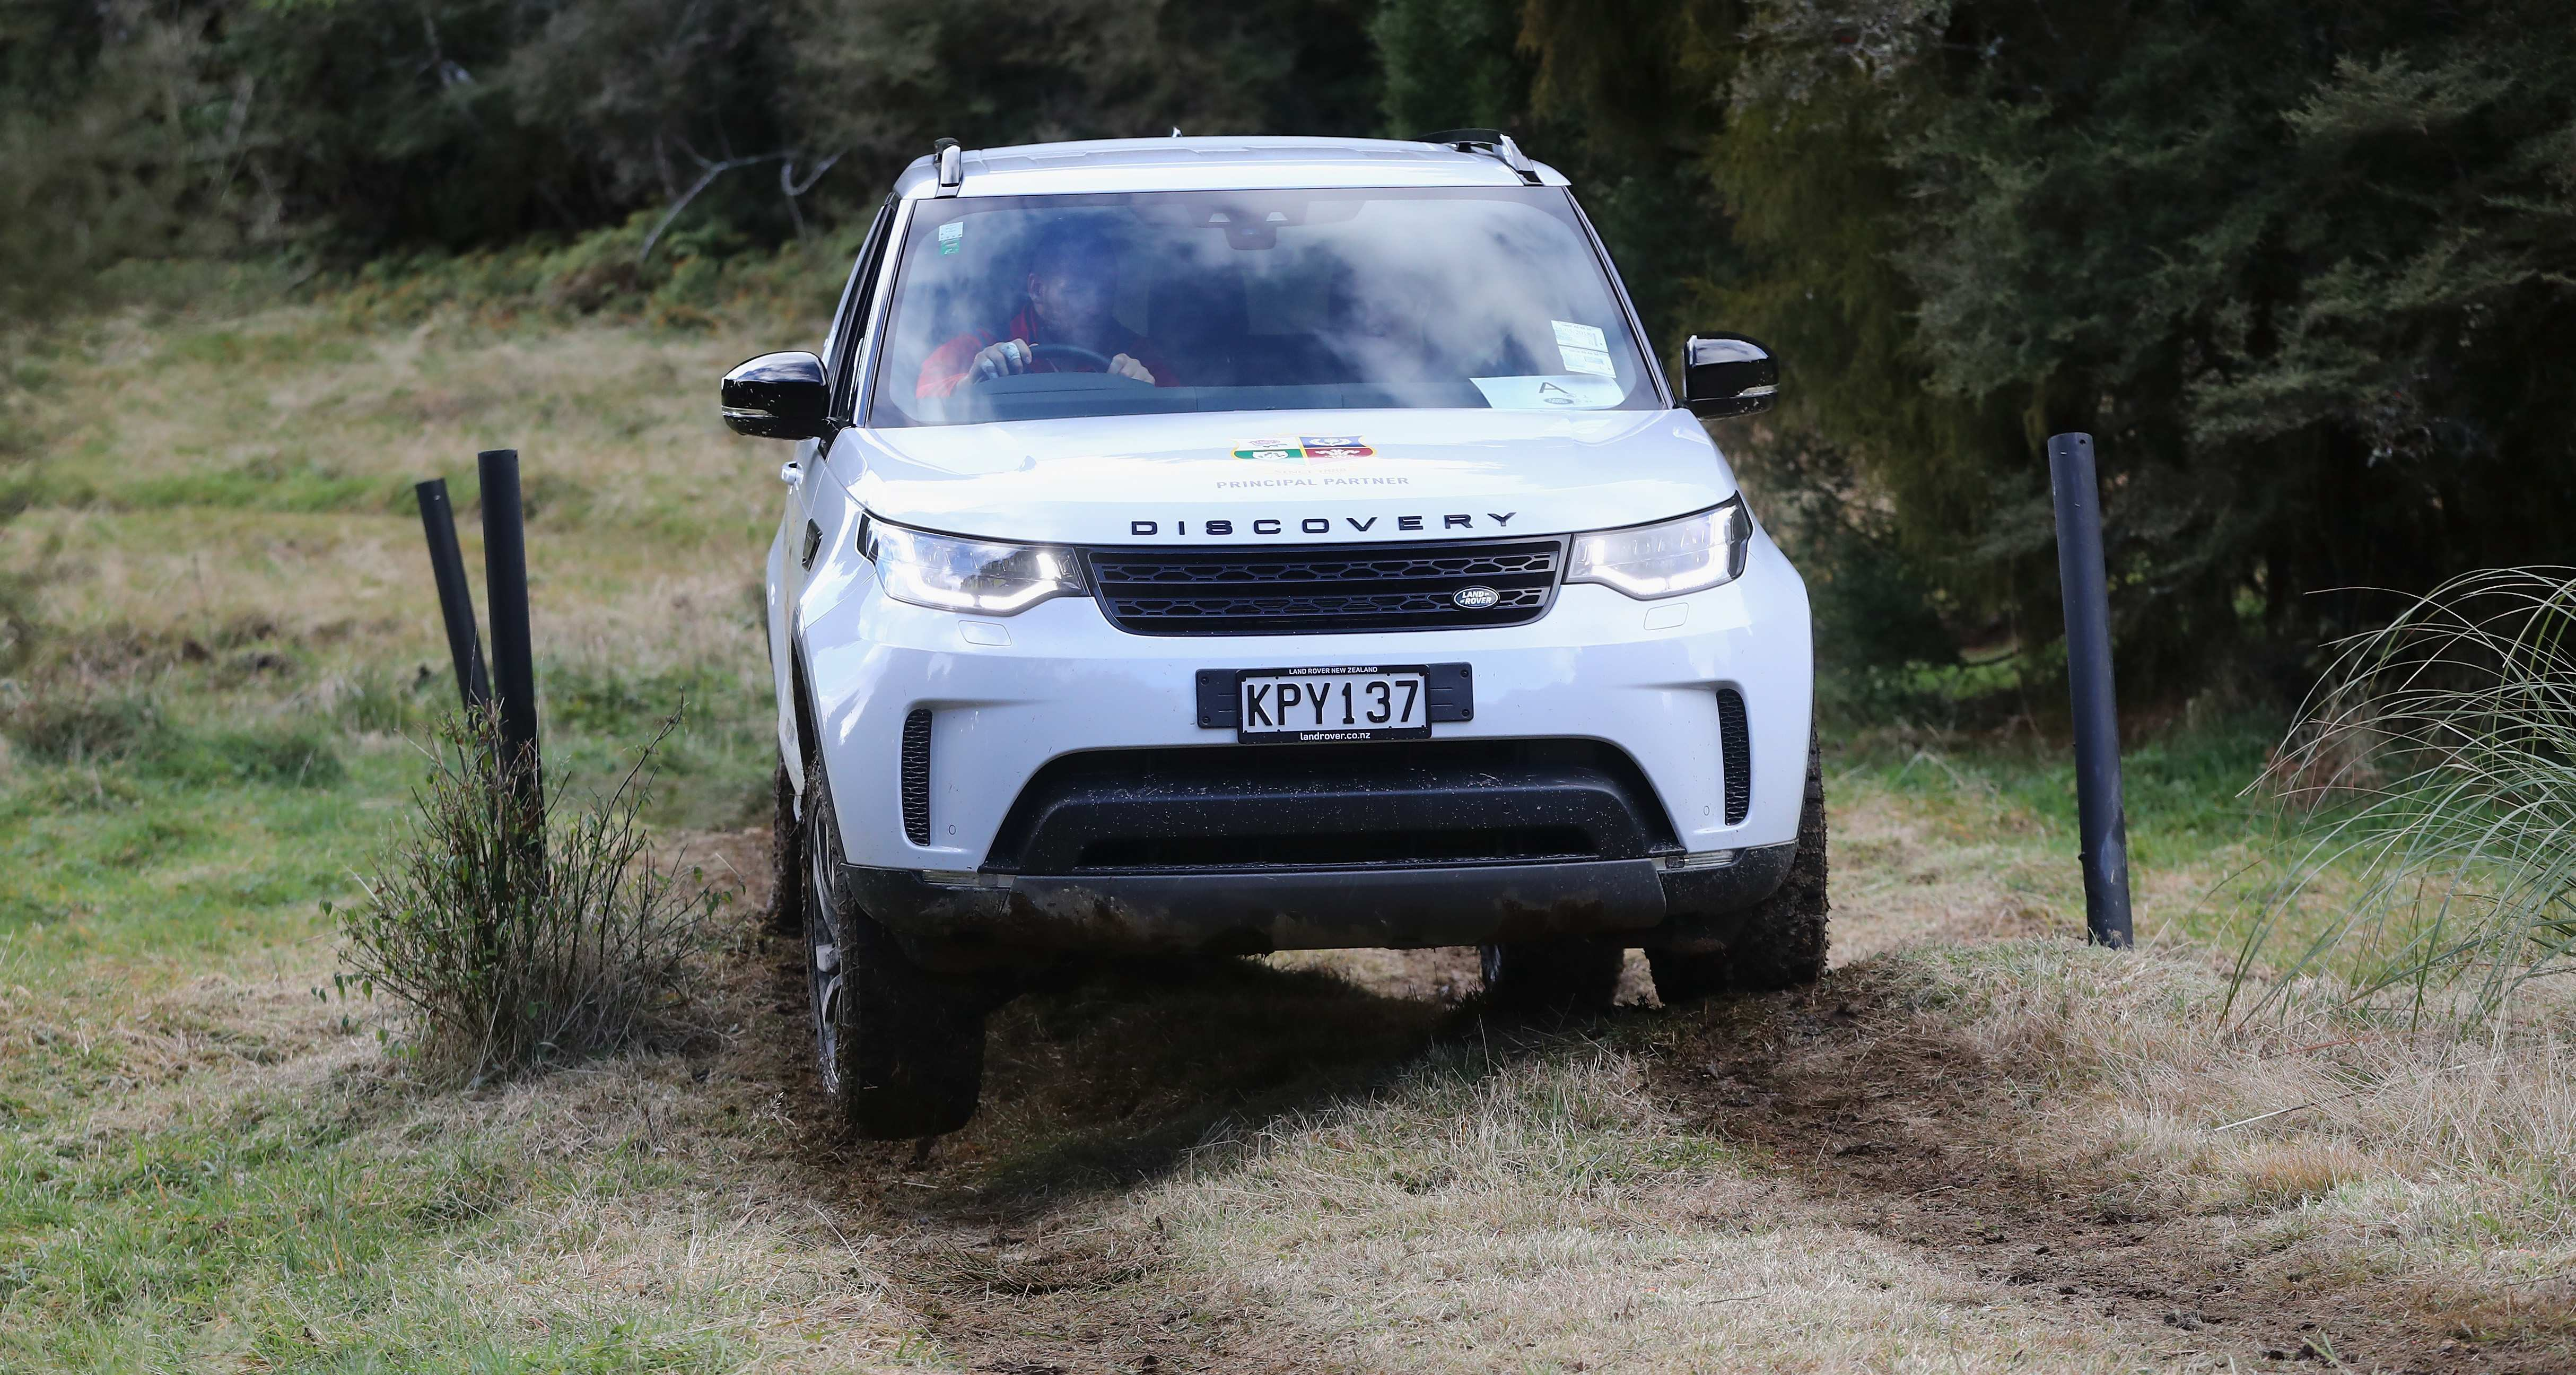 74 The Land Rover Electric Cars 2020 Speed Test with Land Rover Electric Cars 2020